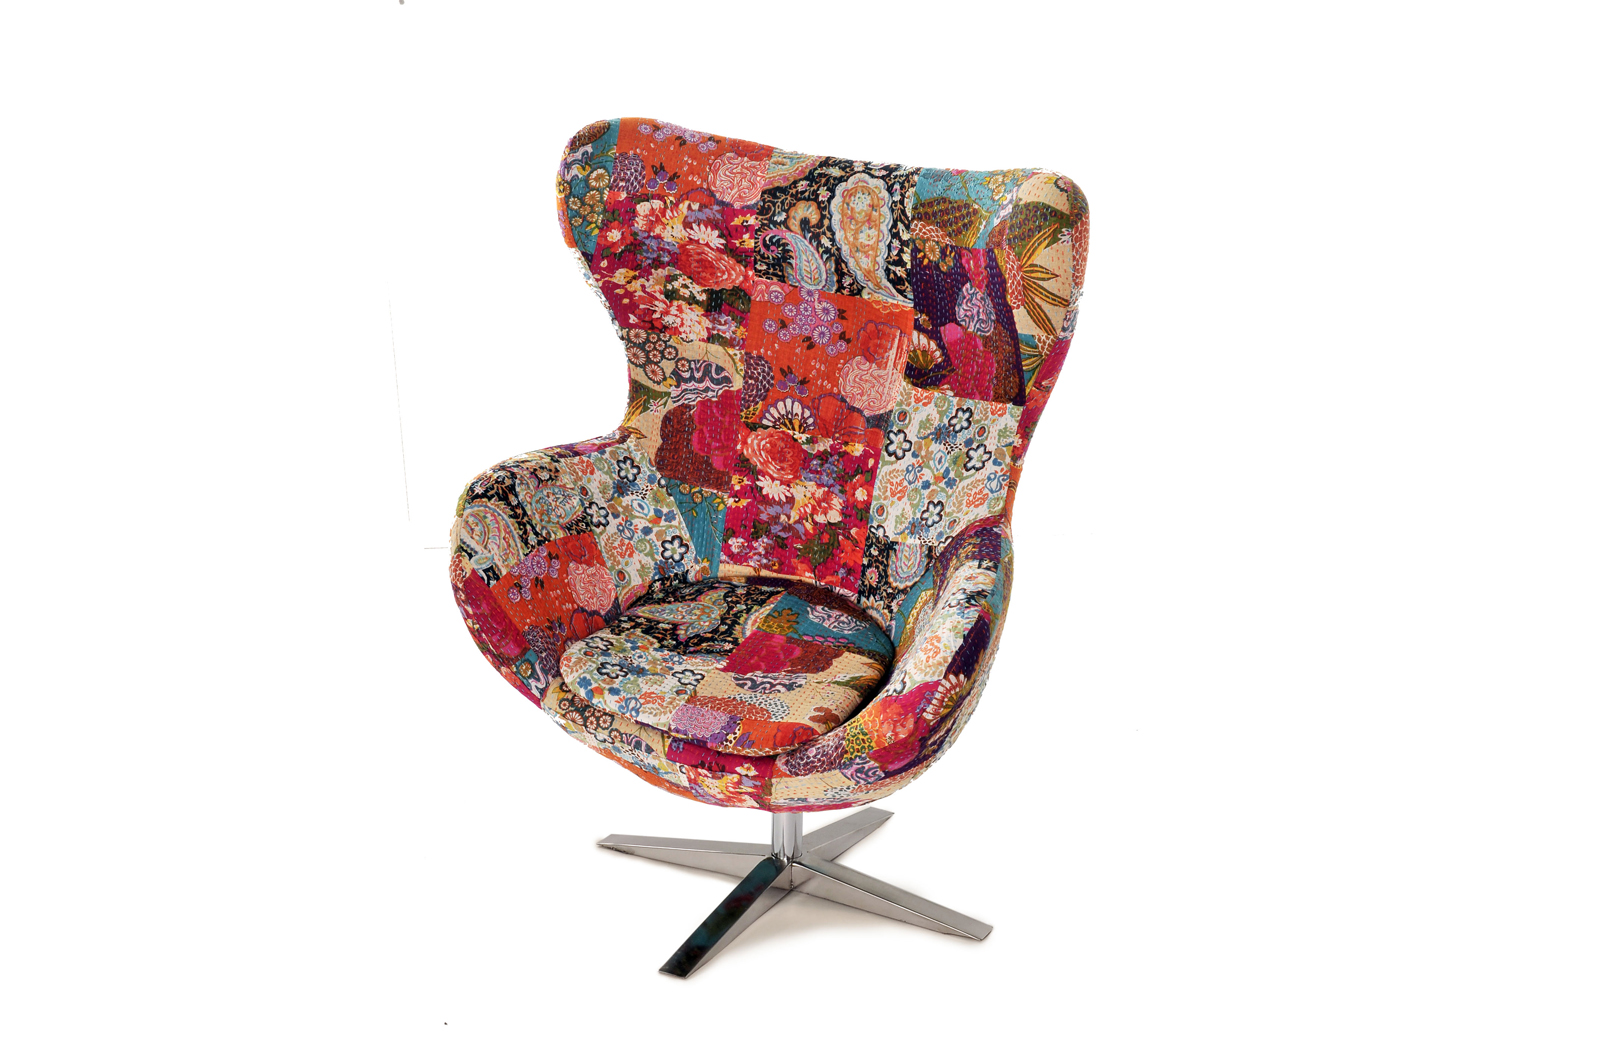 beautiful bunte stuhle sessel 25 raumideen images - globexusa.us ... - Bunte Stuhle Sessel 25 Raumideen